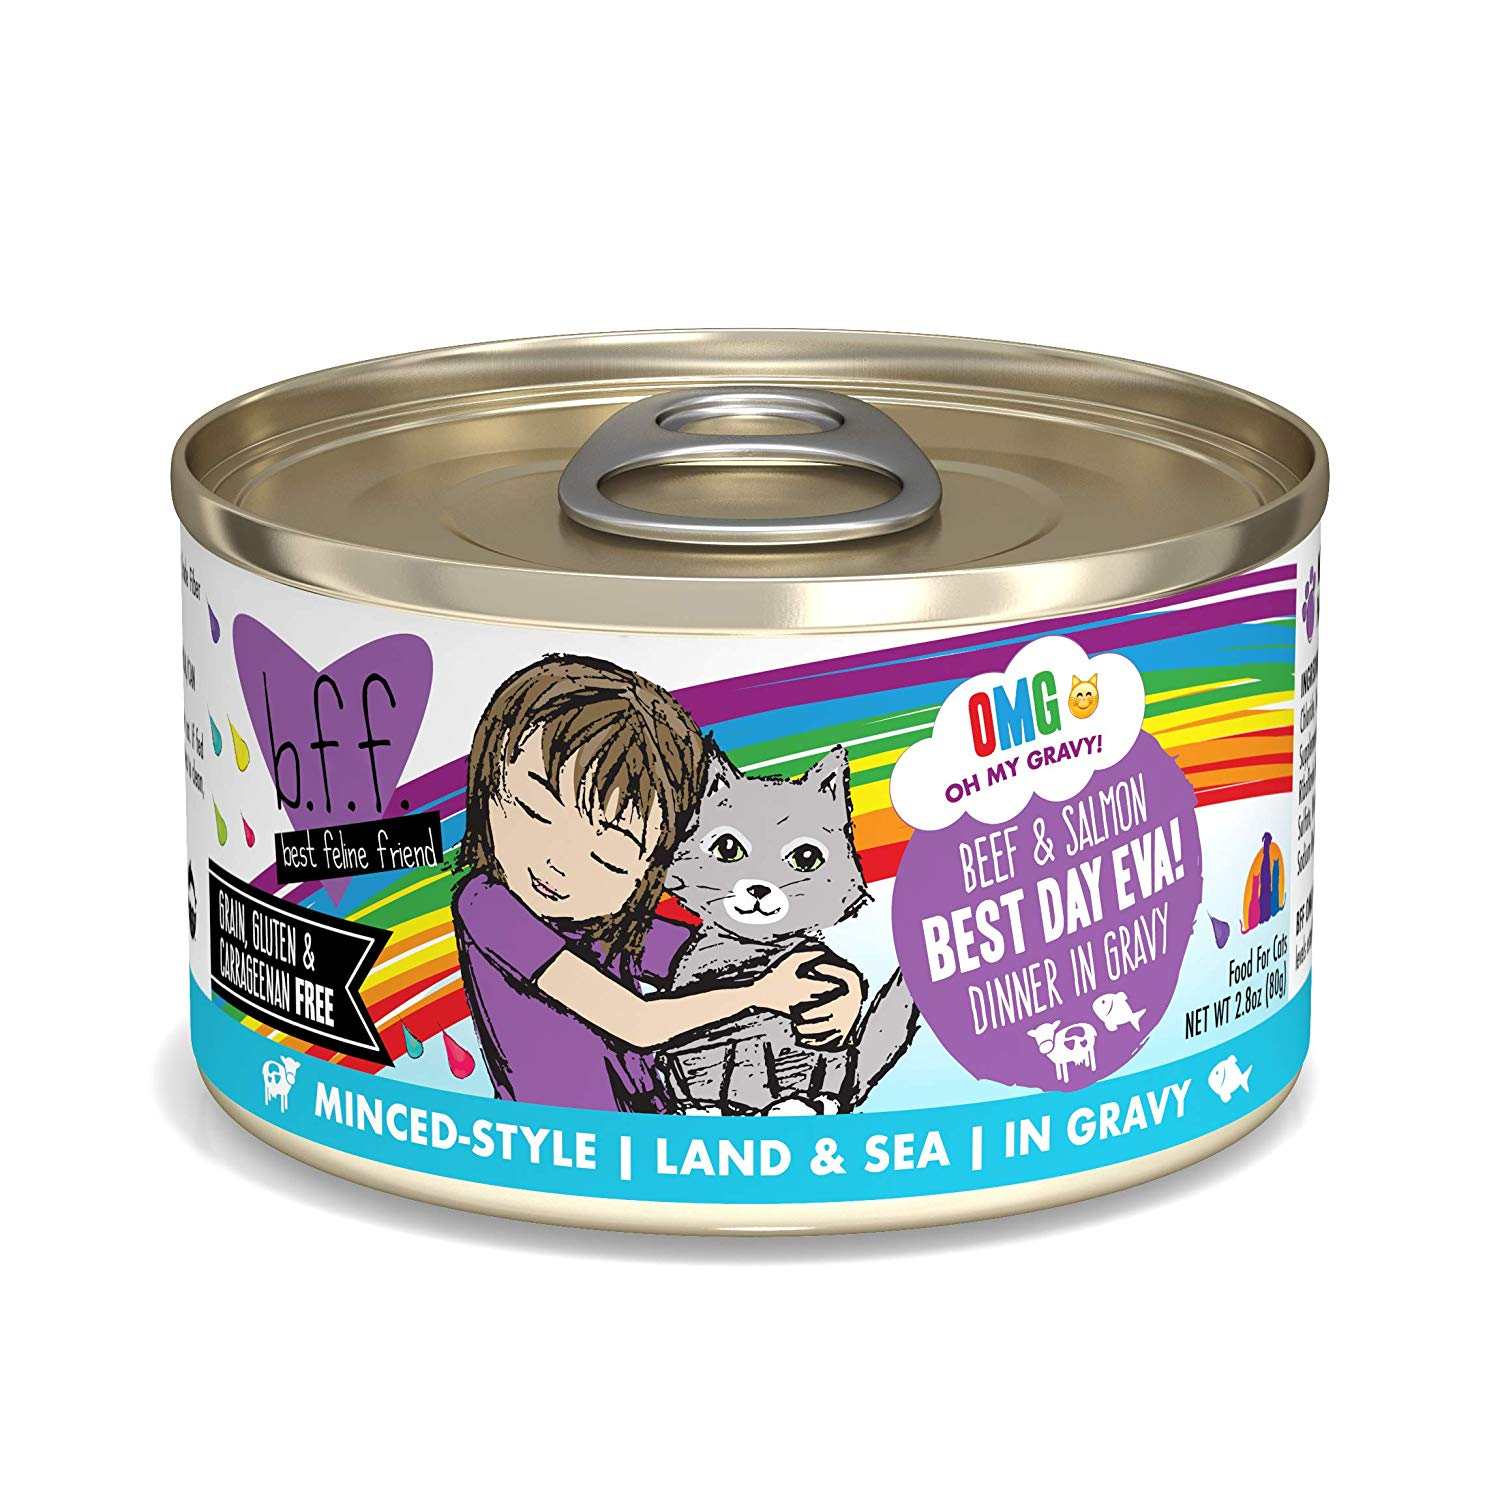 BFF Oh My Gravy! Best Day Eva! Beef & Salmon Dinner in Gravy Grain-Free Wet Cat Food, 2.8-oz Size: 2.8-oz